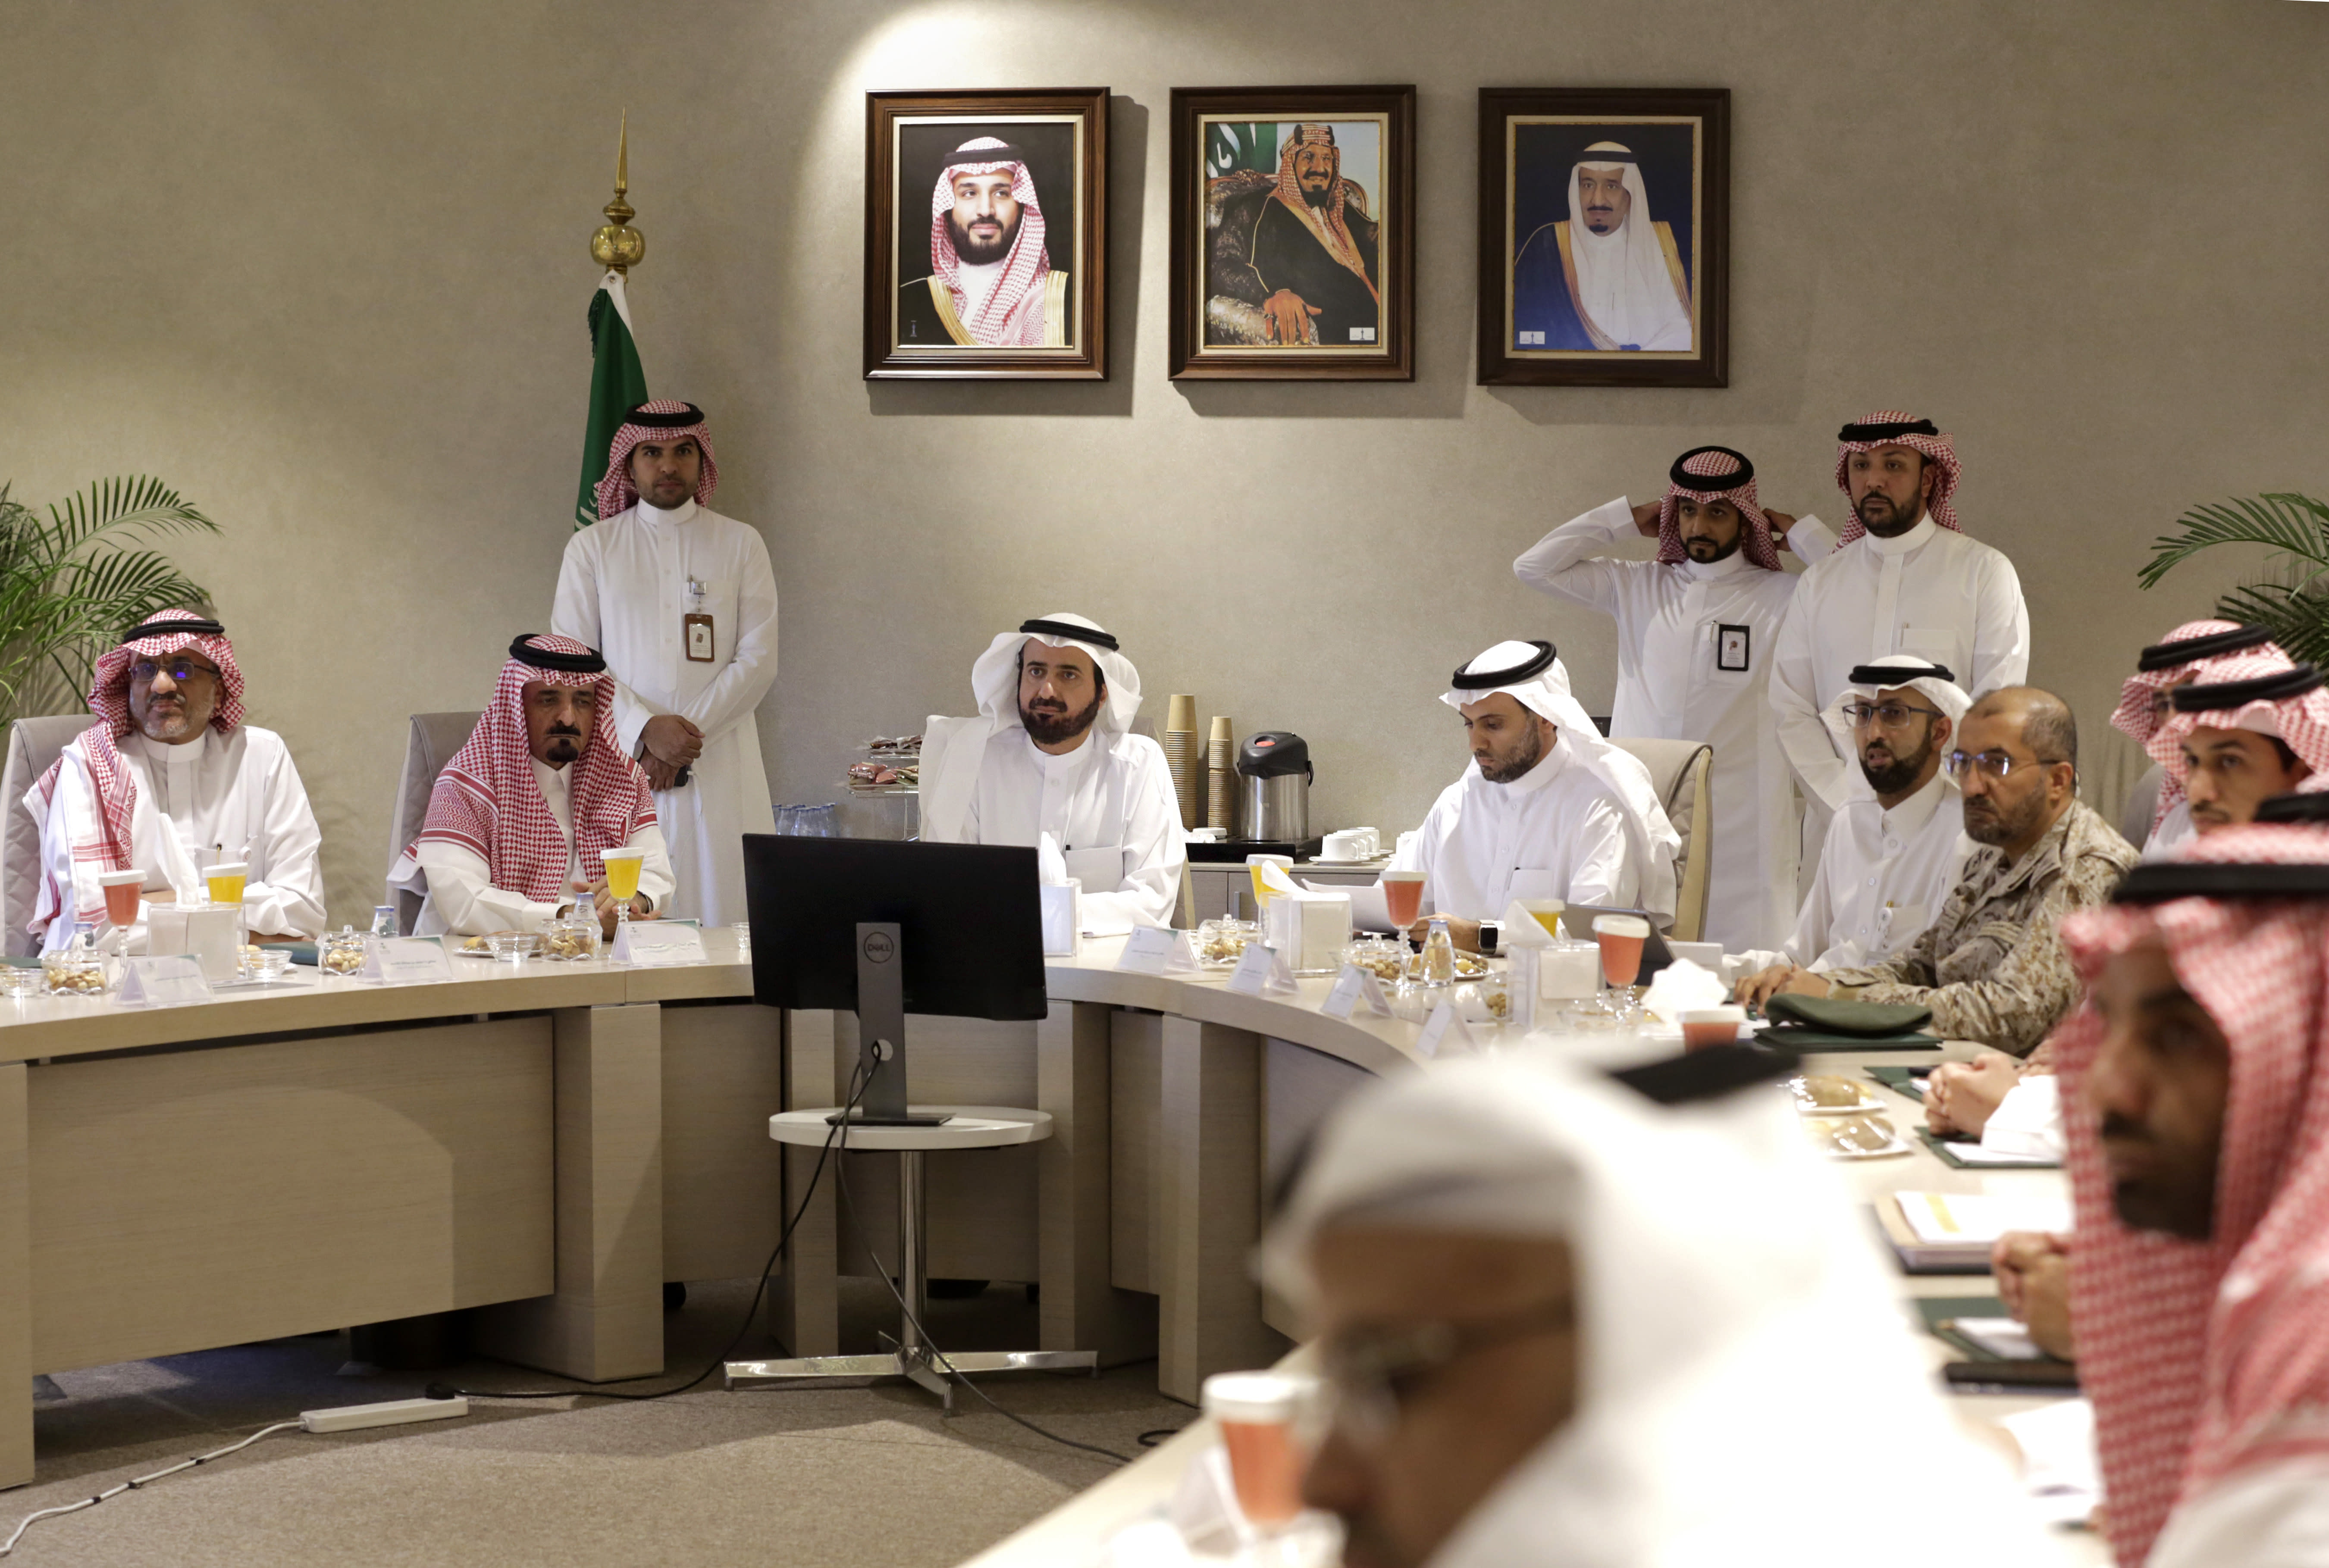 Saudi Health Minister Tawfiq Al-Rabiah, center left, meets with health officials to discuss the latest situation on coronavirus, at the Saudi Food and Drug Authority in Riyadh, Saudi Arabia, Thursday, Feb. 27, 2020. Saudi Arabia halted travel to the holiest sites in Islam over fears of the global outbreak of the new coronavirus just months ahead of the annual hajj pilgrimage. At top photos show Saudi King Salman, right, his Crown Prince Mohammed bin Salman, left, and Saudi Arabia's founder late King Abdul Aziz Al Saud. (AP Photo/Amr Nabil)